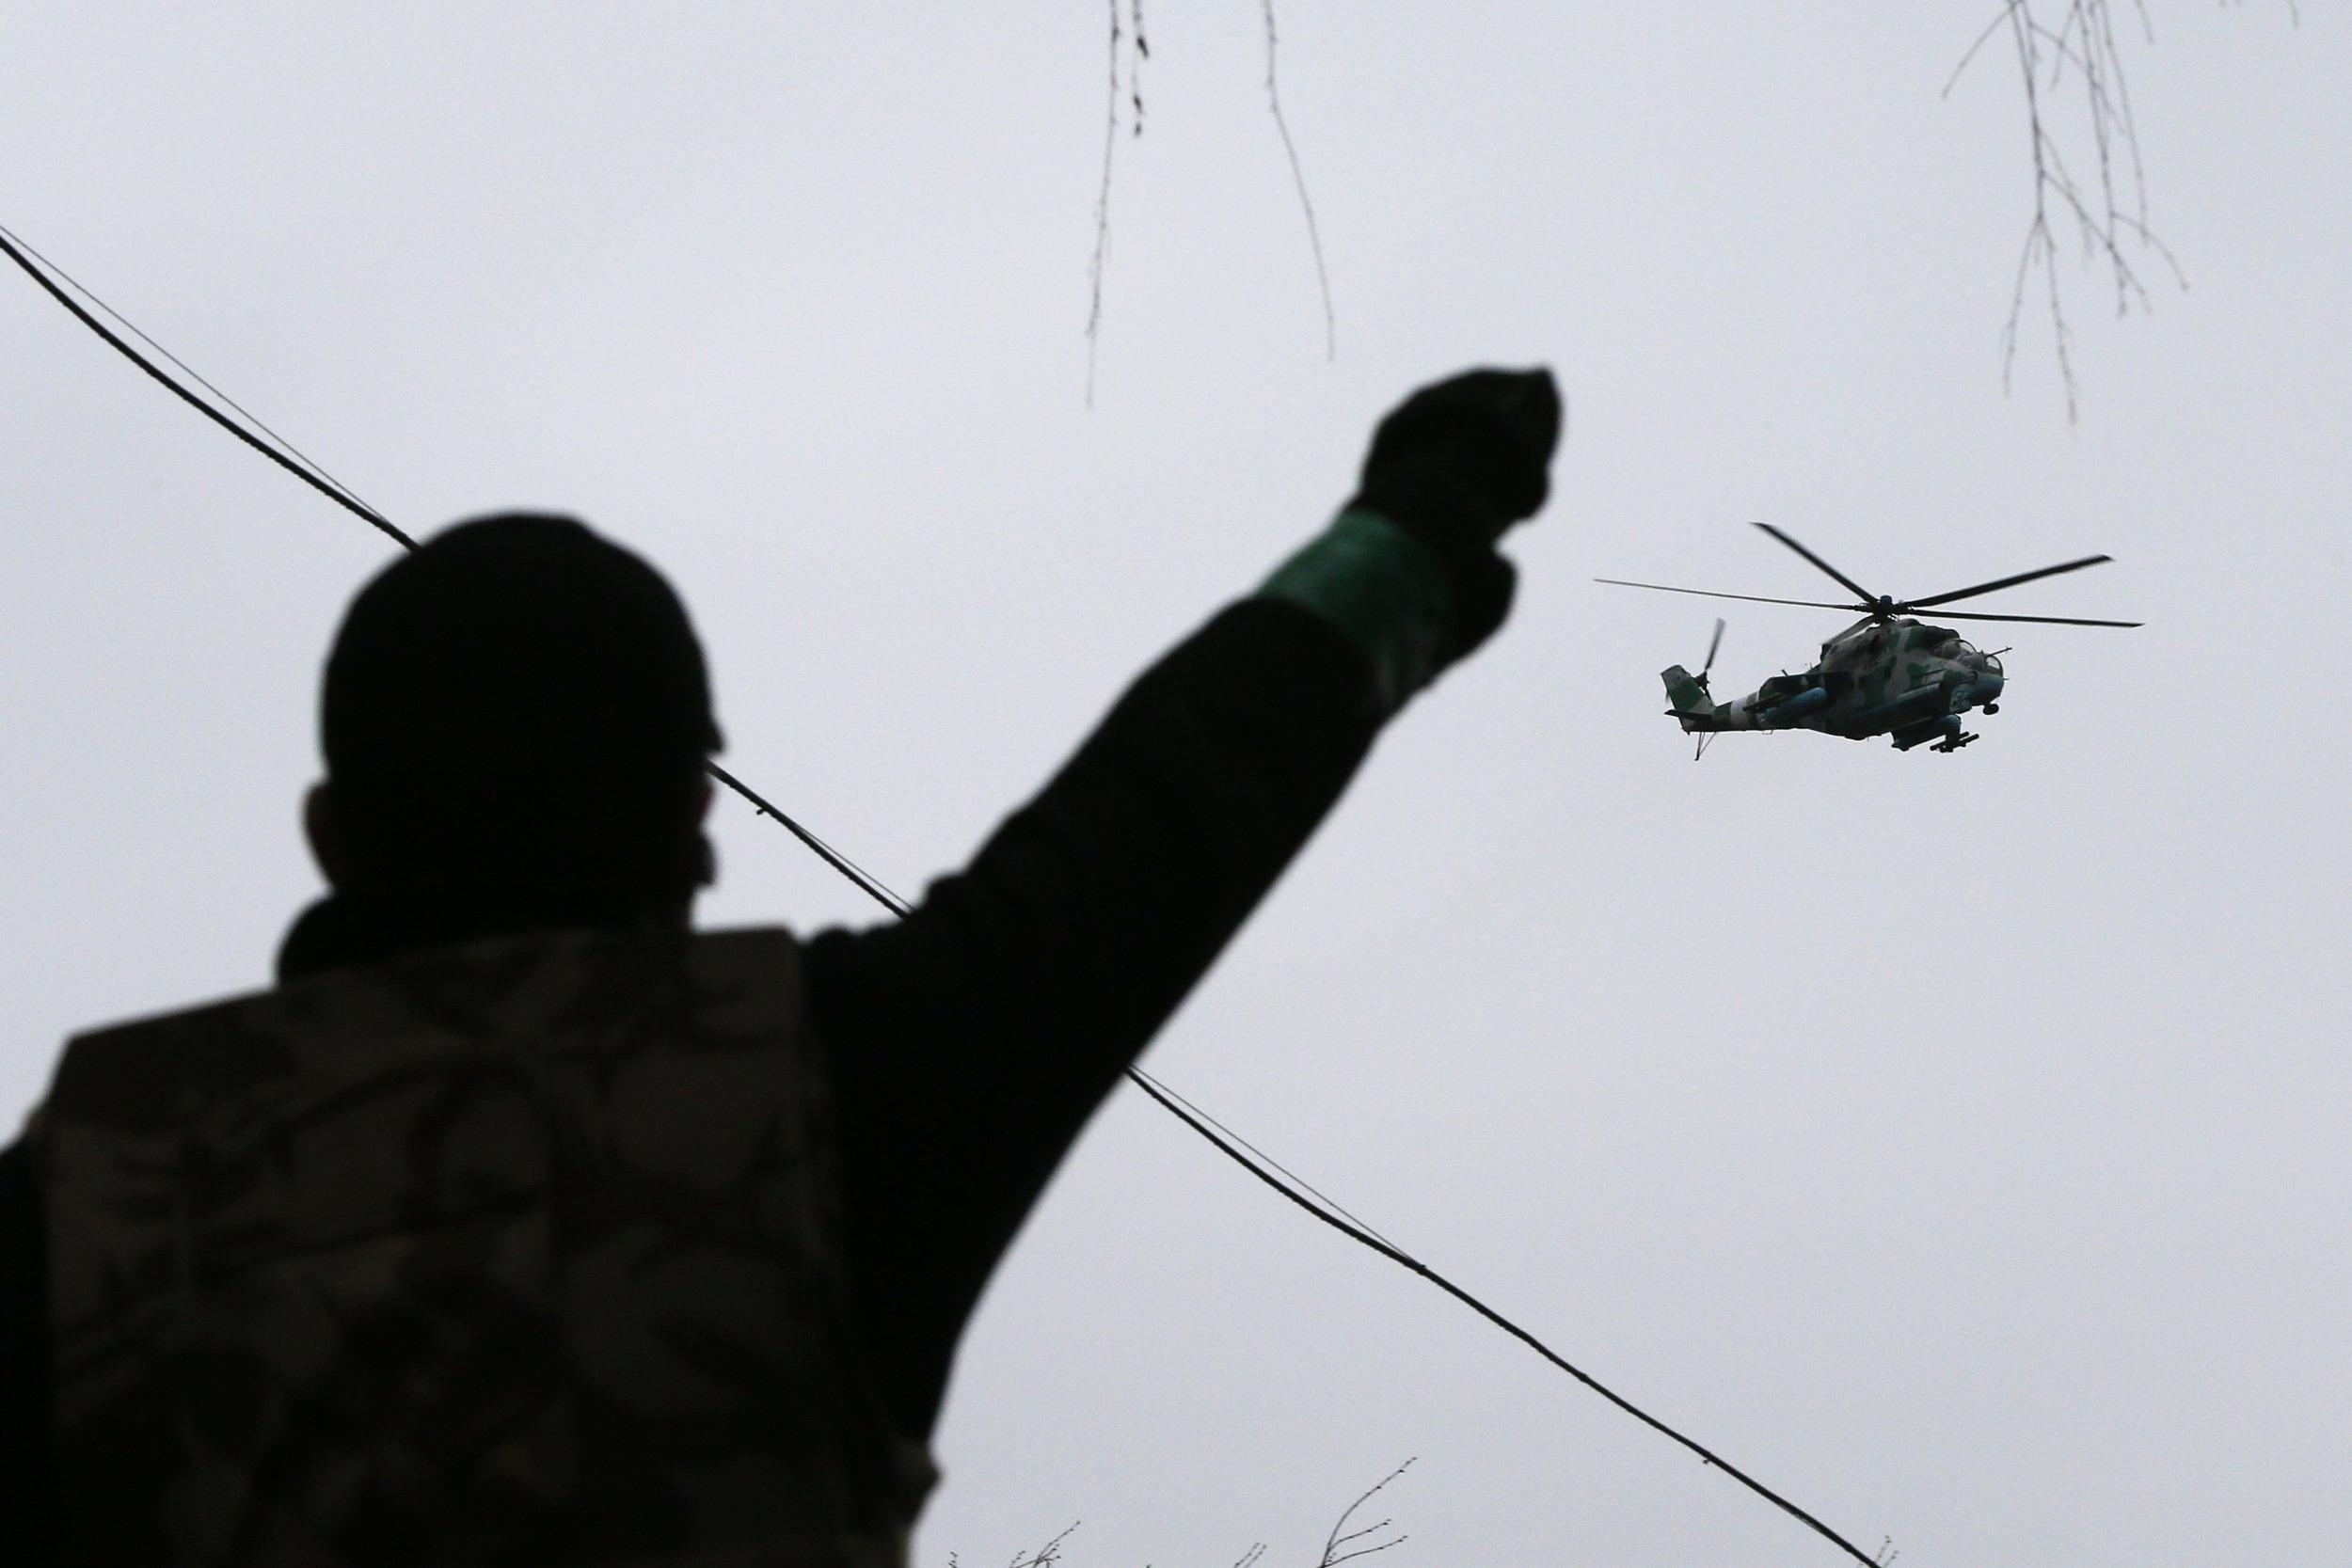 Image: A man gestures while pro-Russian protesters gather at the police headquarters, while a military helicopter flies above, in Slaviansk